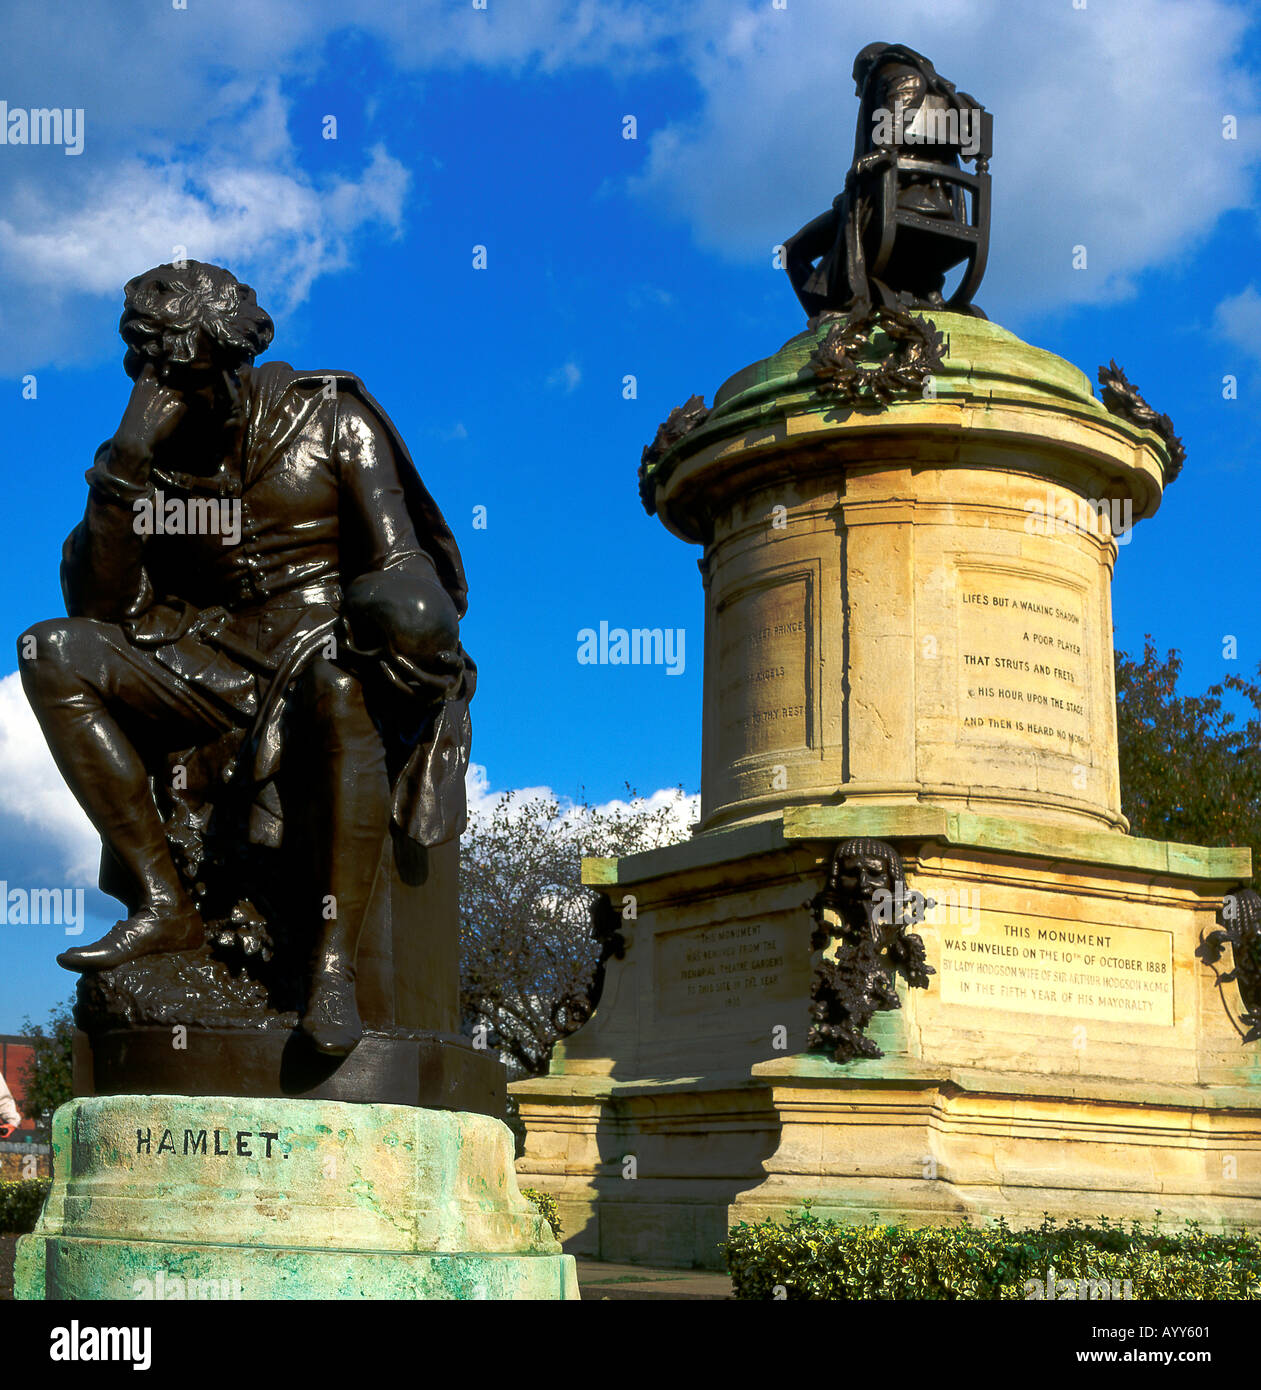 Shakespeare Monument with Hamlet at Stratford Upon Avon Warwickshire England - Stock Image